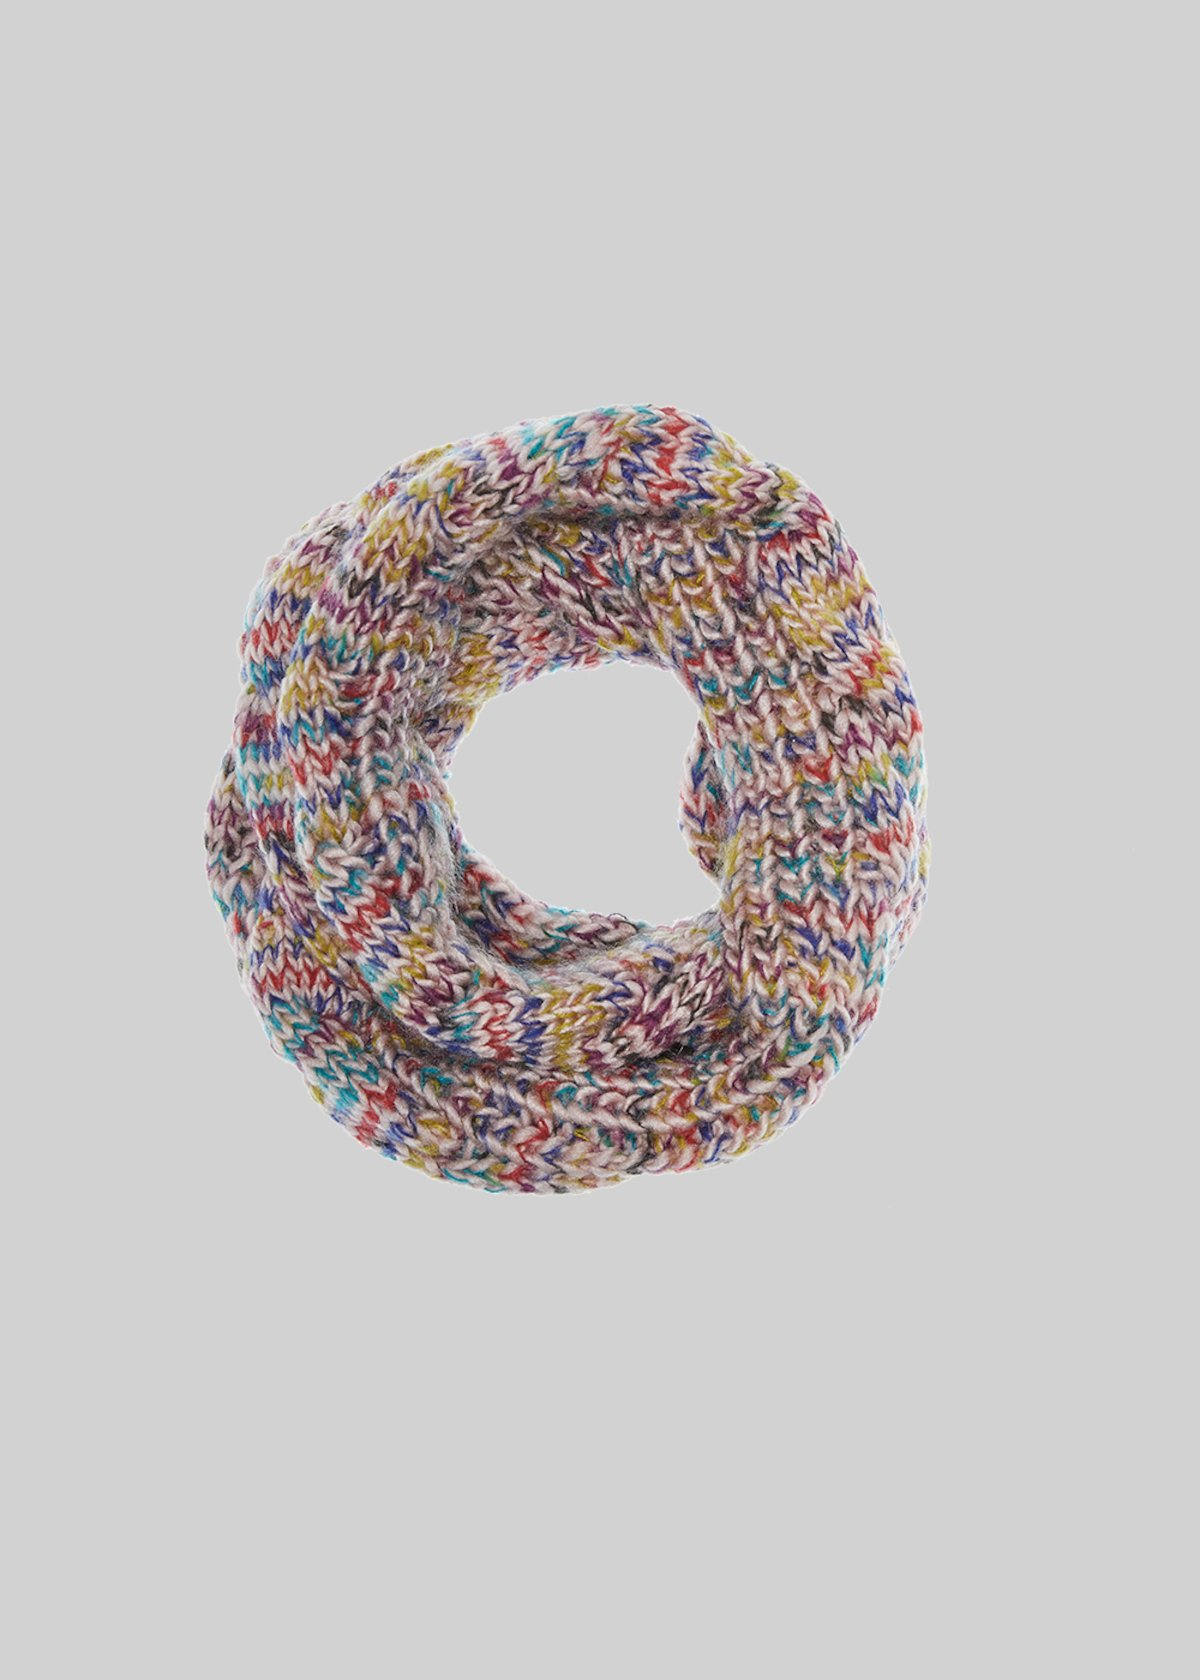 Shane infinity scarf in multicoloured braided knitted fabric